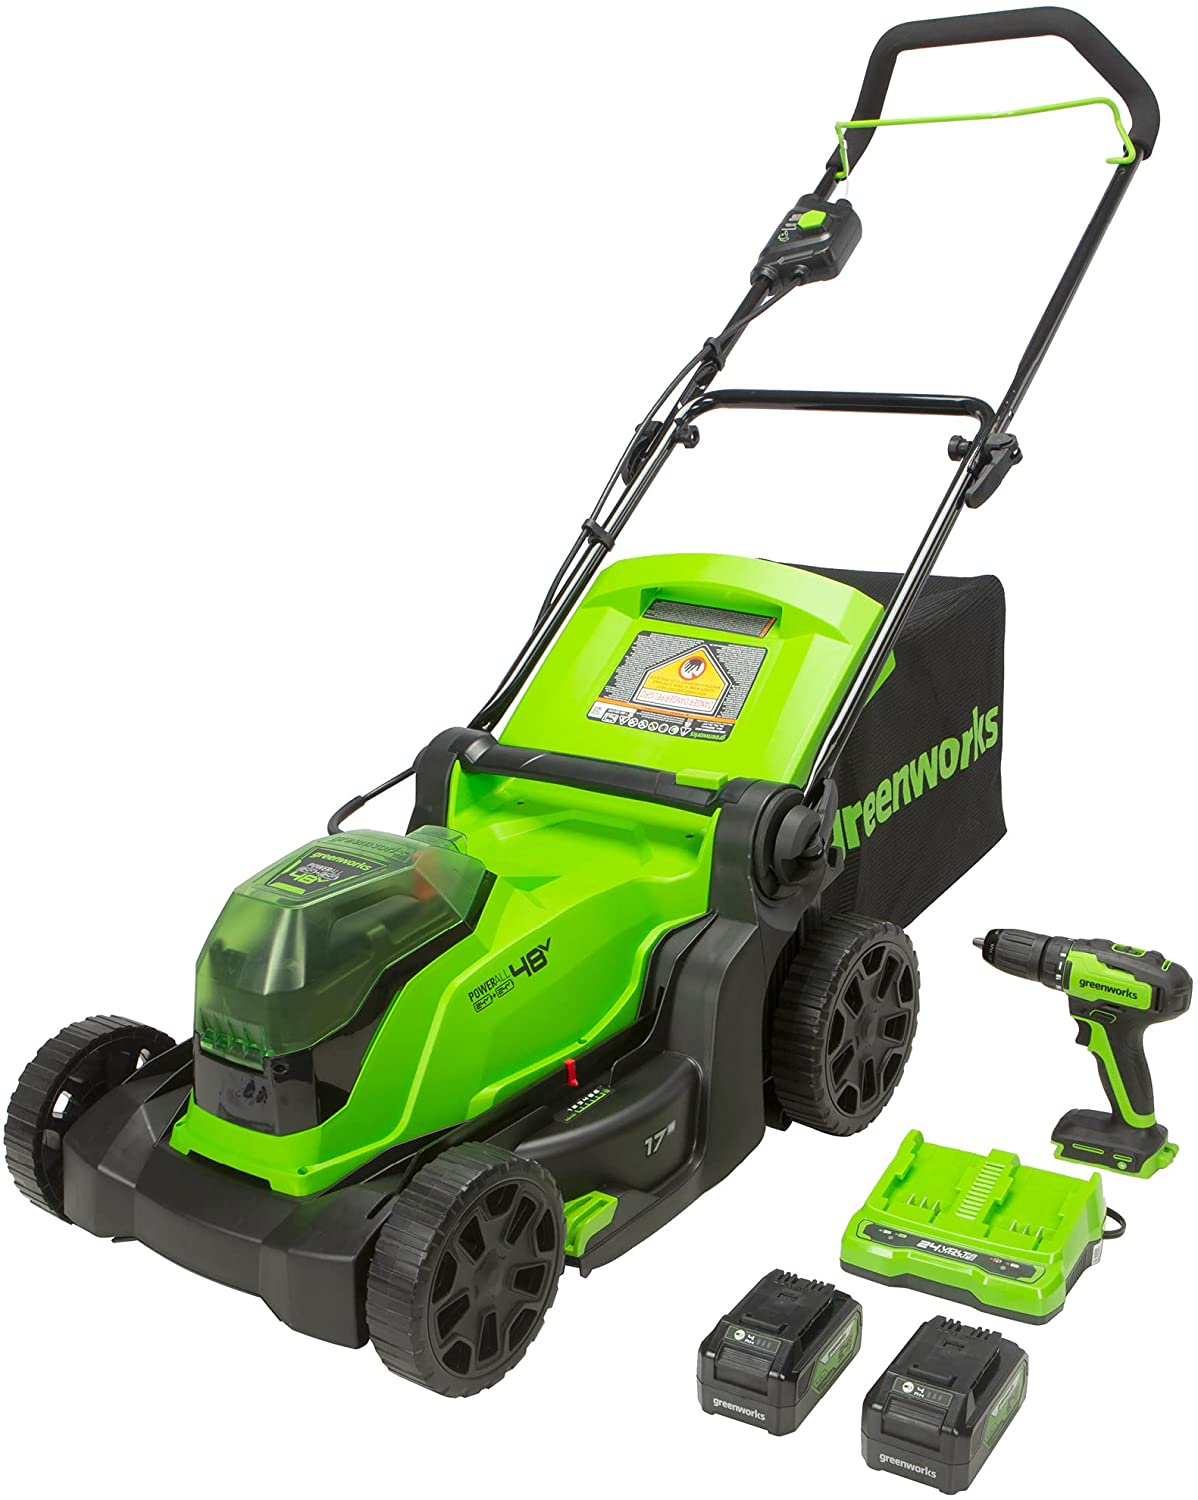 Greenworks 48V 2 x 24V Brushless Mower Special Inexpensive Campaign 17-Inch Cordless Lawn